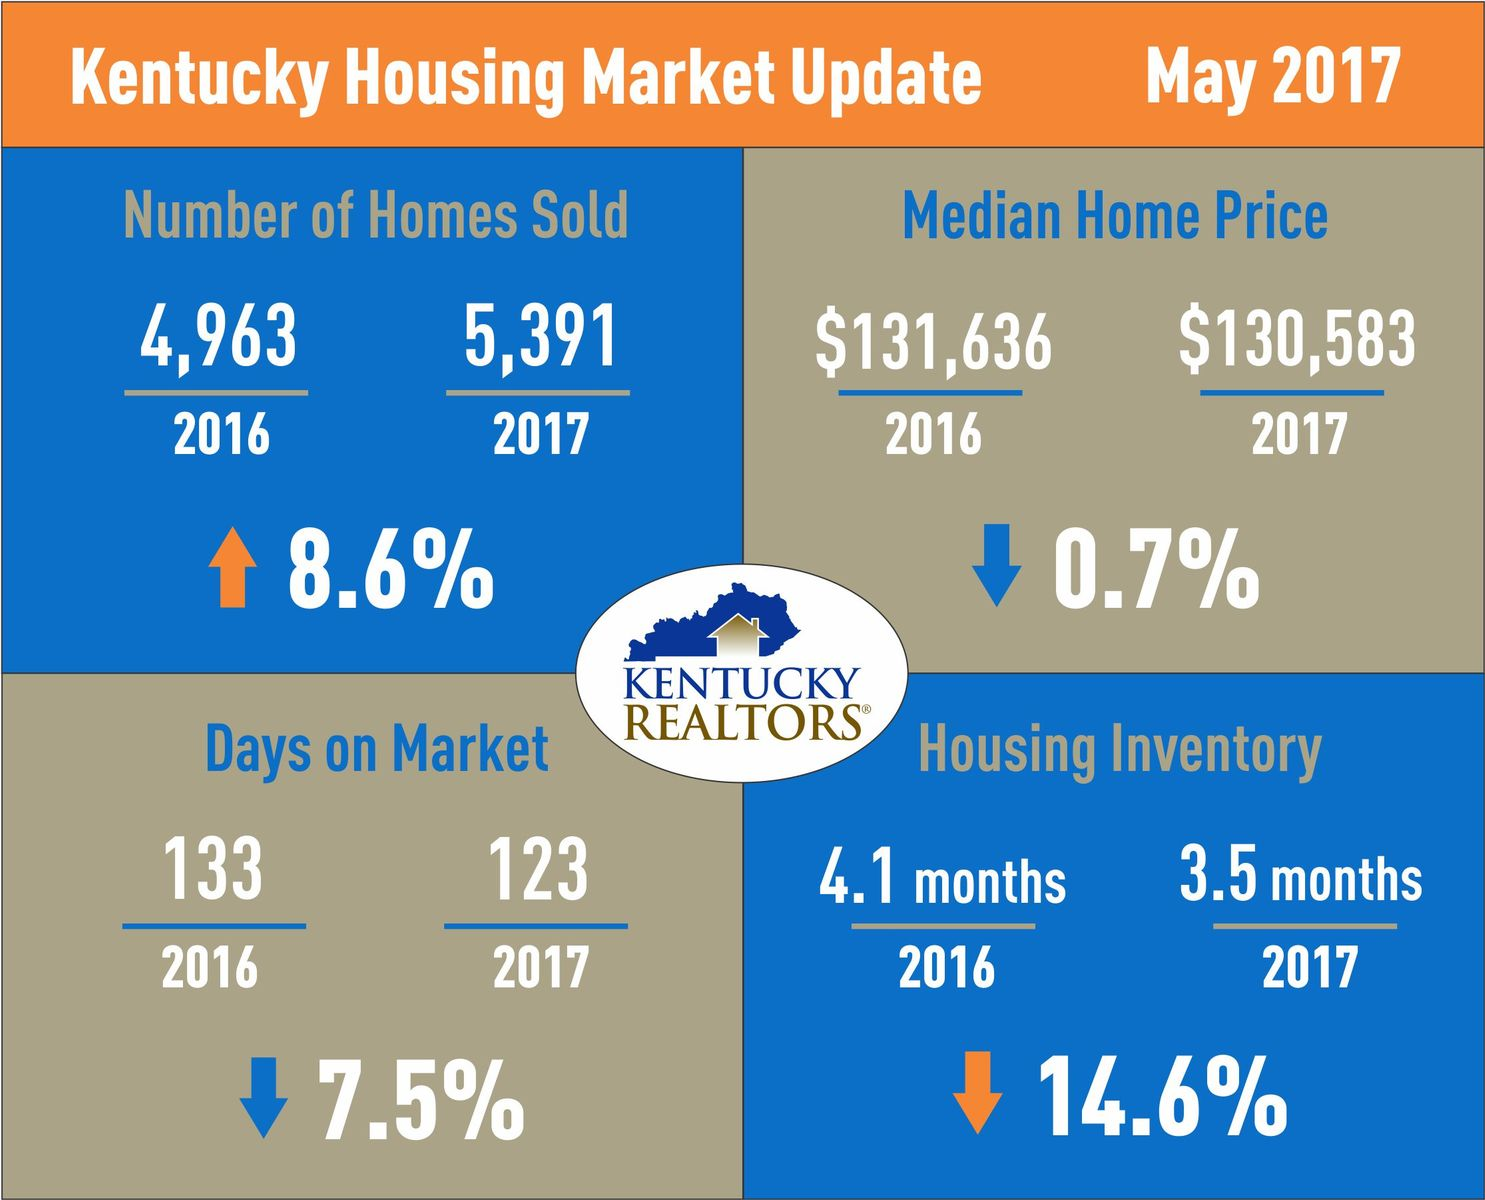 Kentucky Housing Market Update May 2017